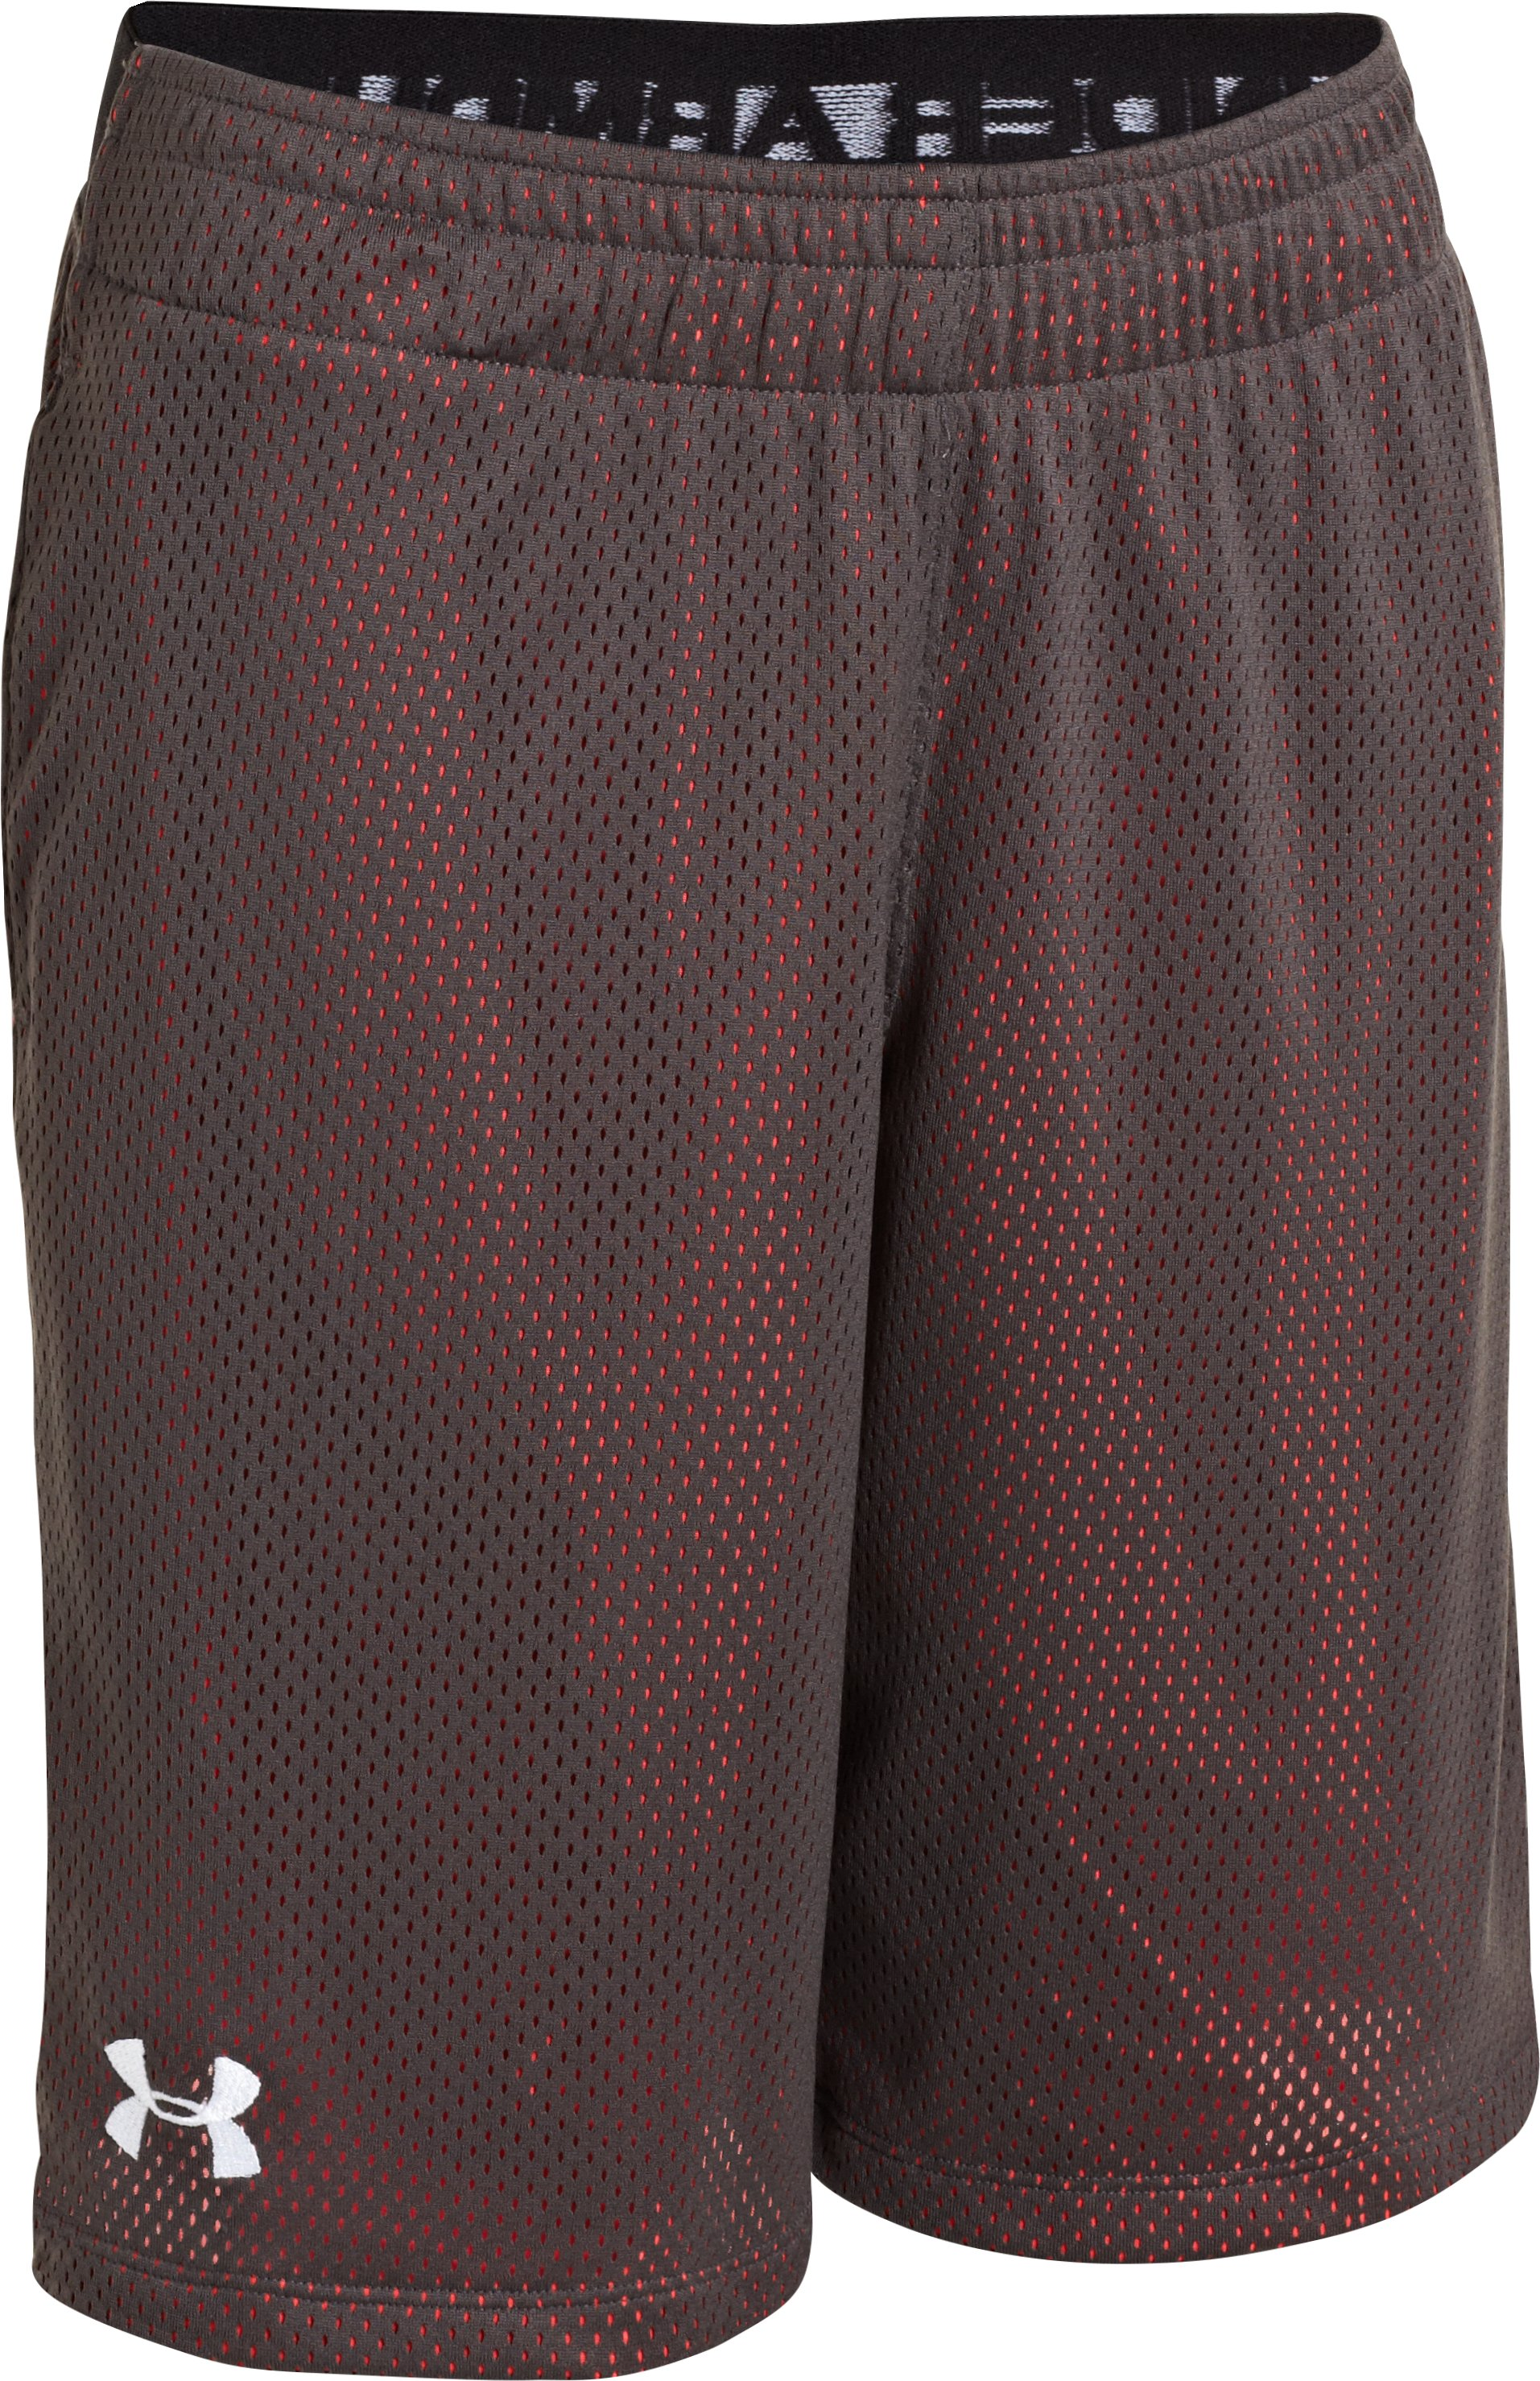 "Boys' UA Renegade 9"" Shorts, Charcoal, zoomed image"